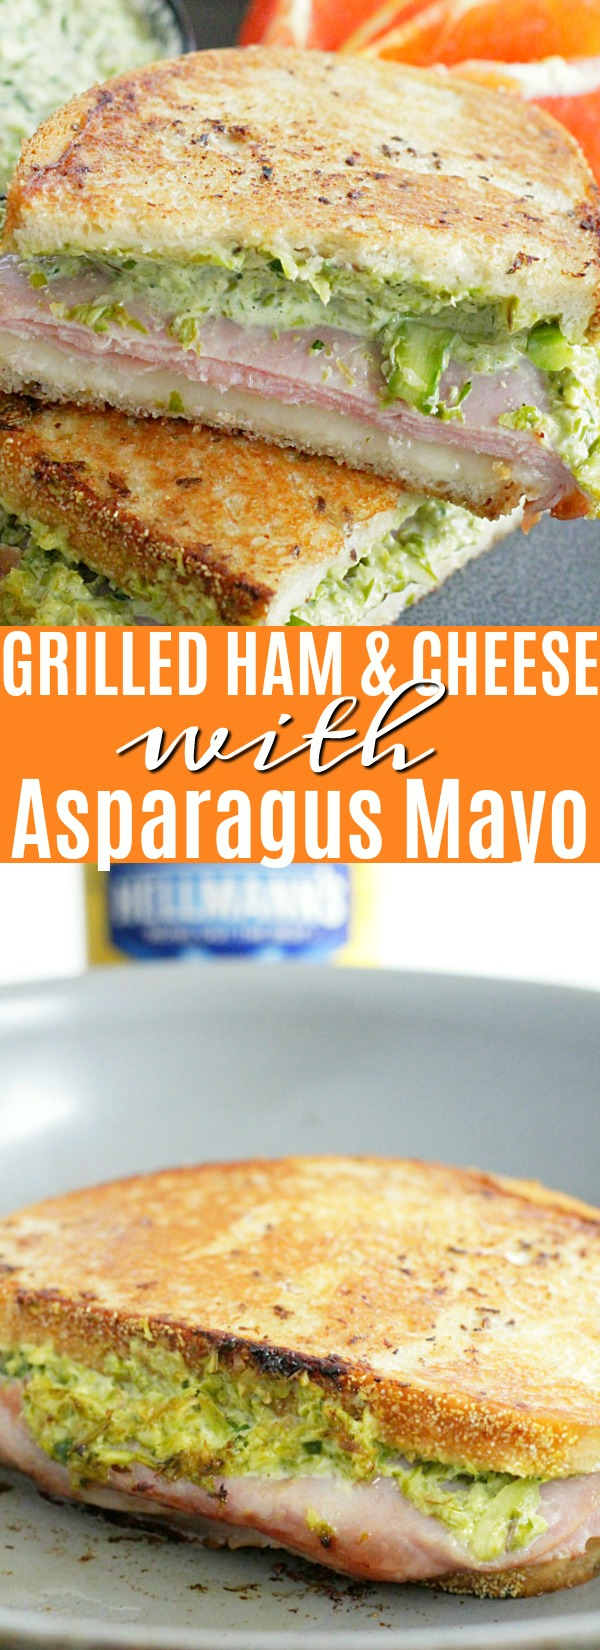 Grilled Ham and Cheese Sandwich with Asparagus Mayonnaise | Foodtastic Mom